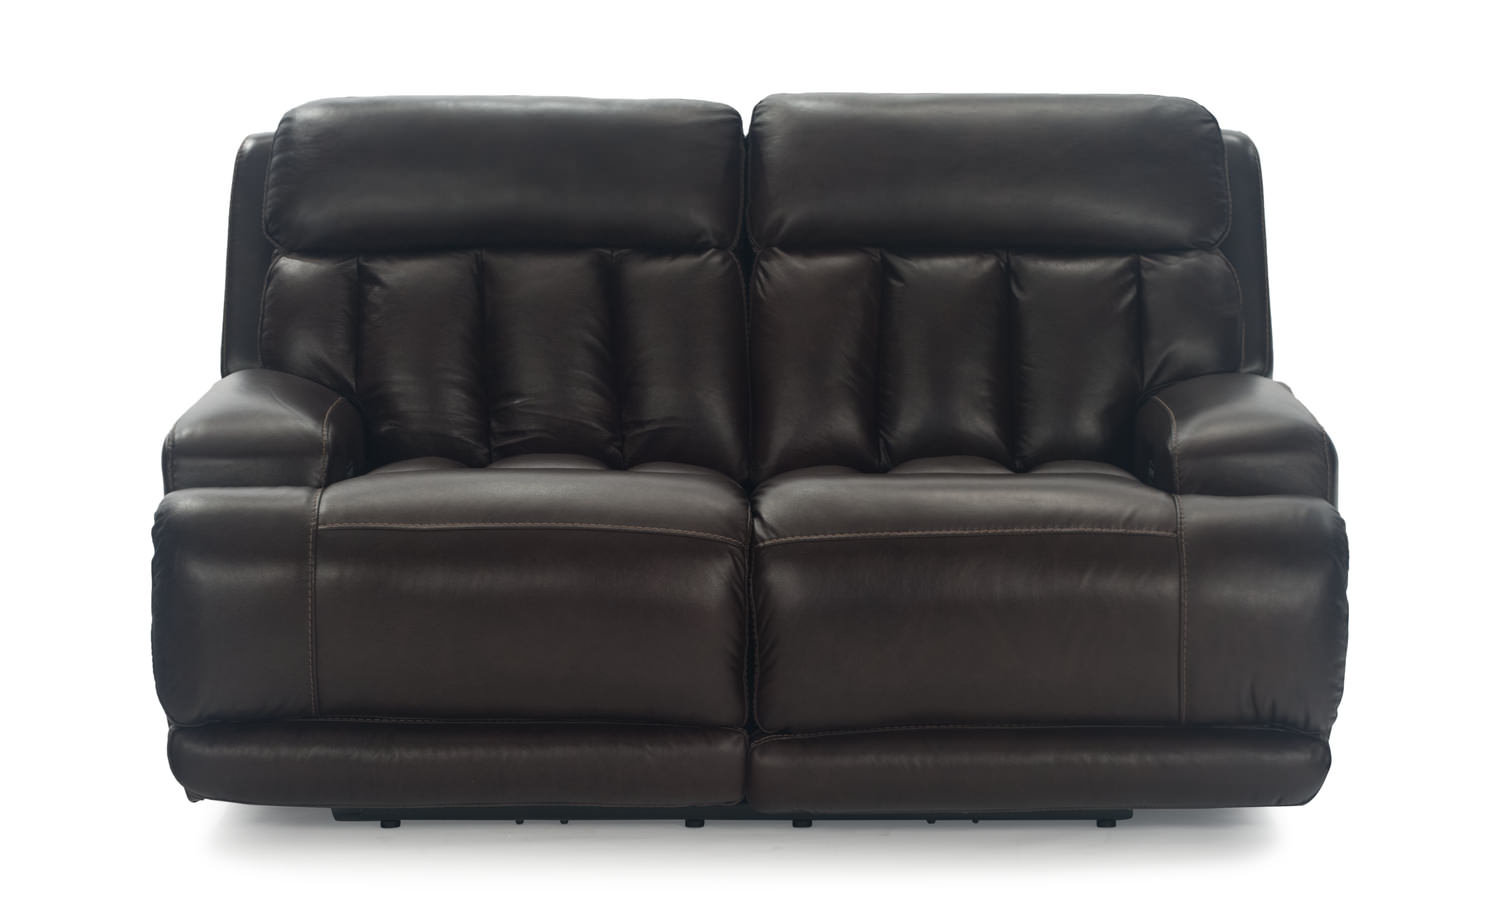 Super Nitro Leather Power Reclining Loveseat Inzonedesignstudio Interior Chair Design Inzonedesignstudiocom